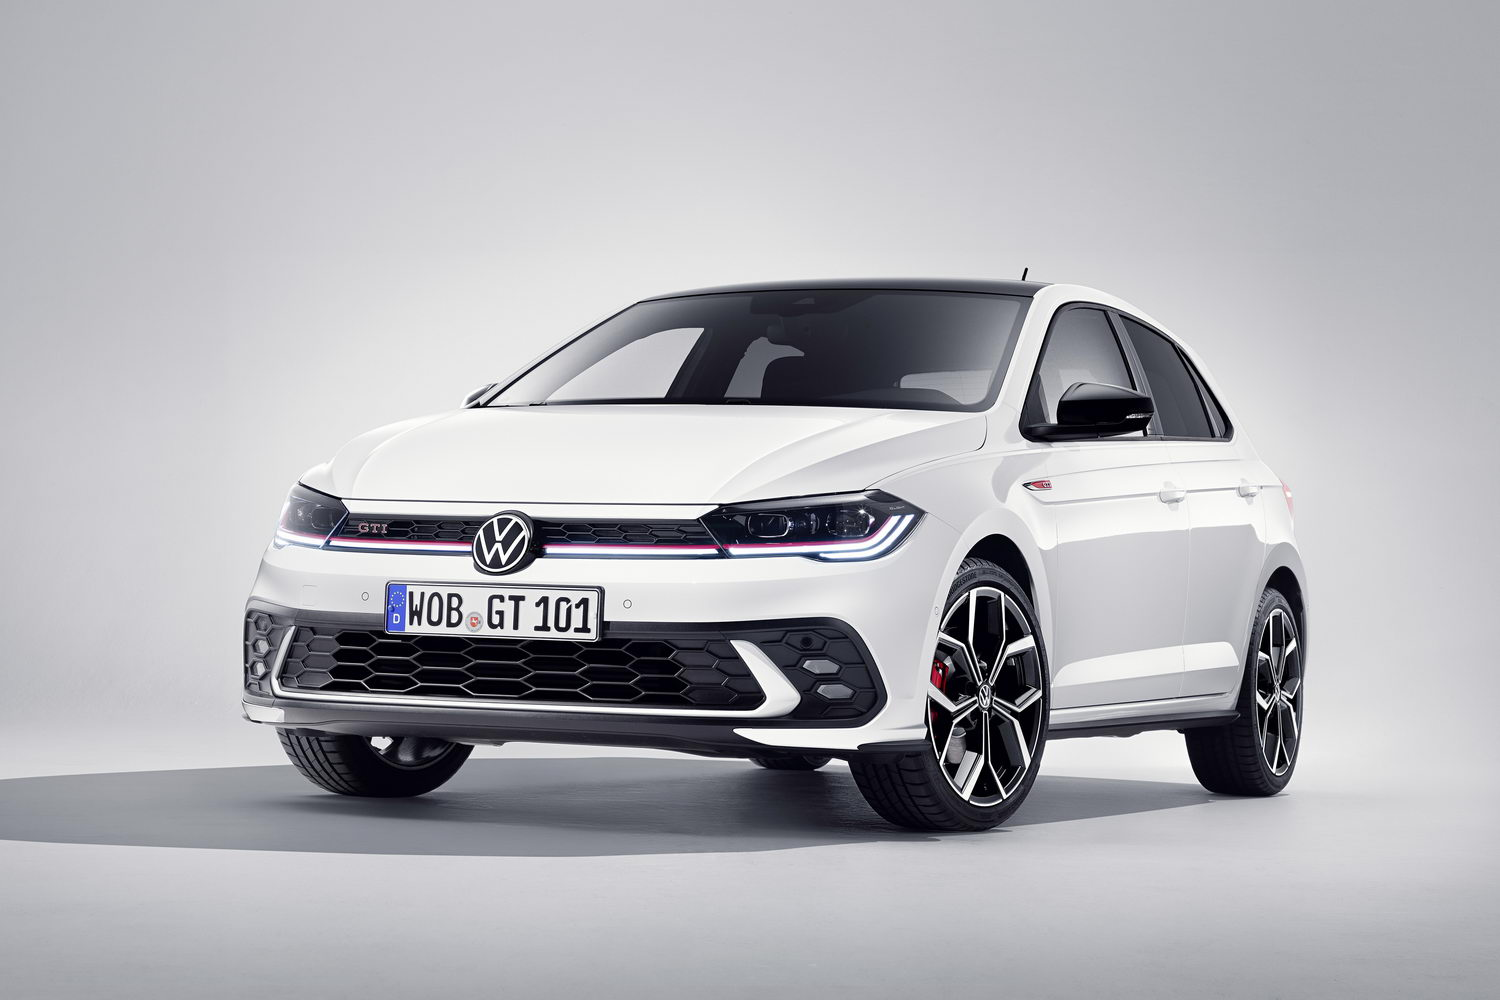 Car News | Volkswagen shows off new Polo GTI | CompleteCar.ie